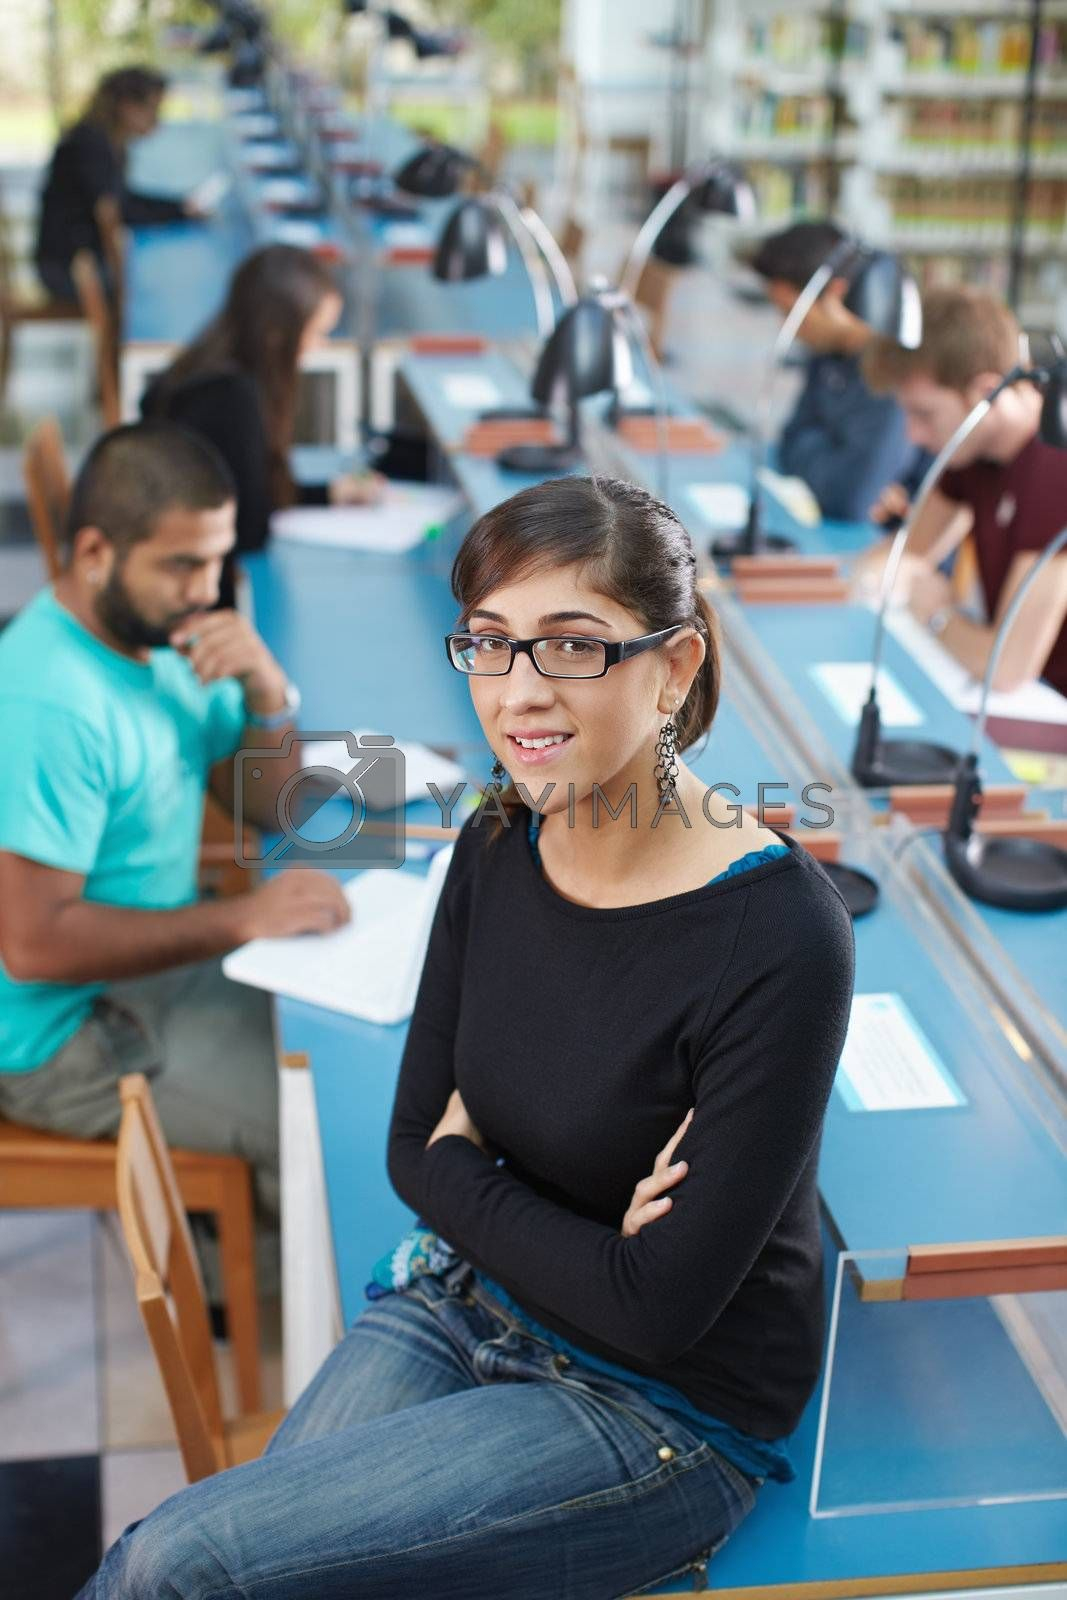 portrait of female college student sitting on table in library and looking at camera. Vertical shape, high angle view